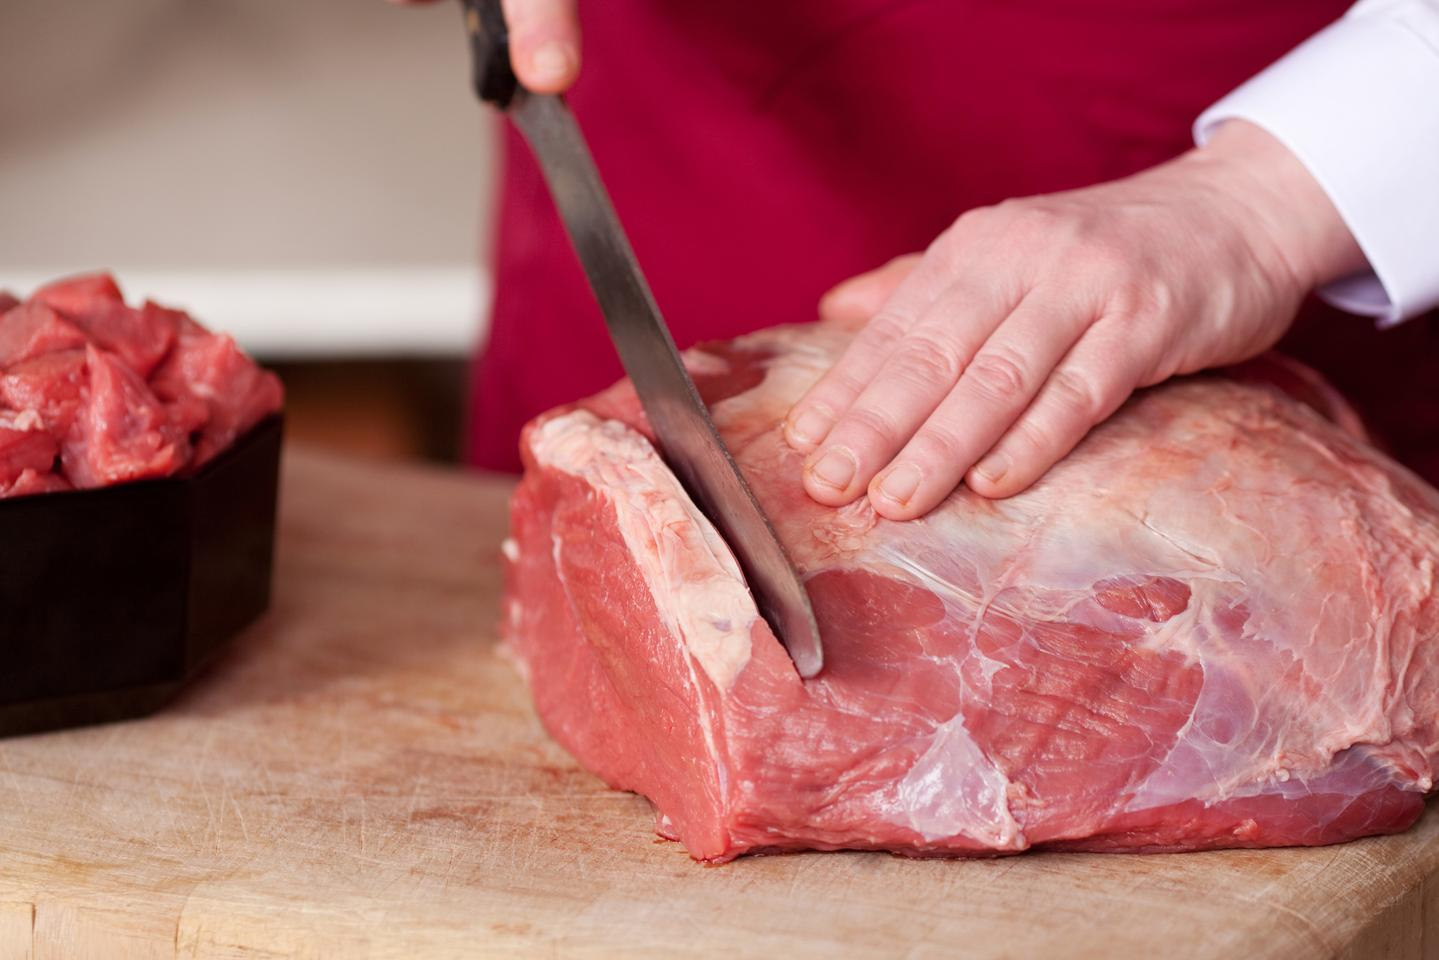 """The divisive conclusion of a new study that there is little health benefit to reducing red meat consumption has been called """"irresponsible and unethical"""" by some scientists"""